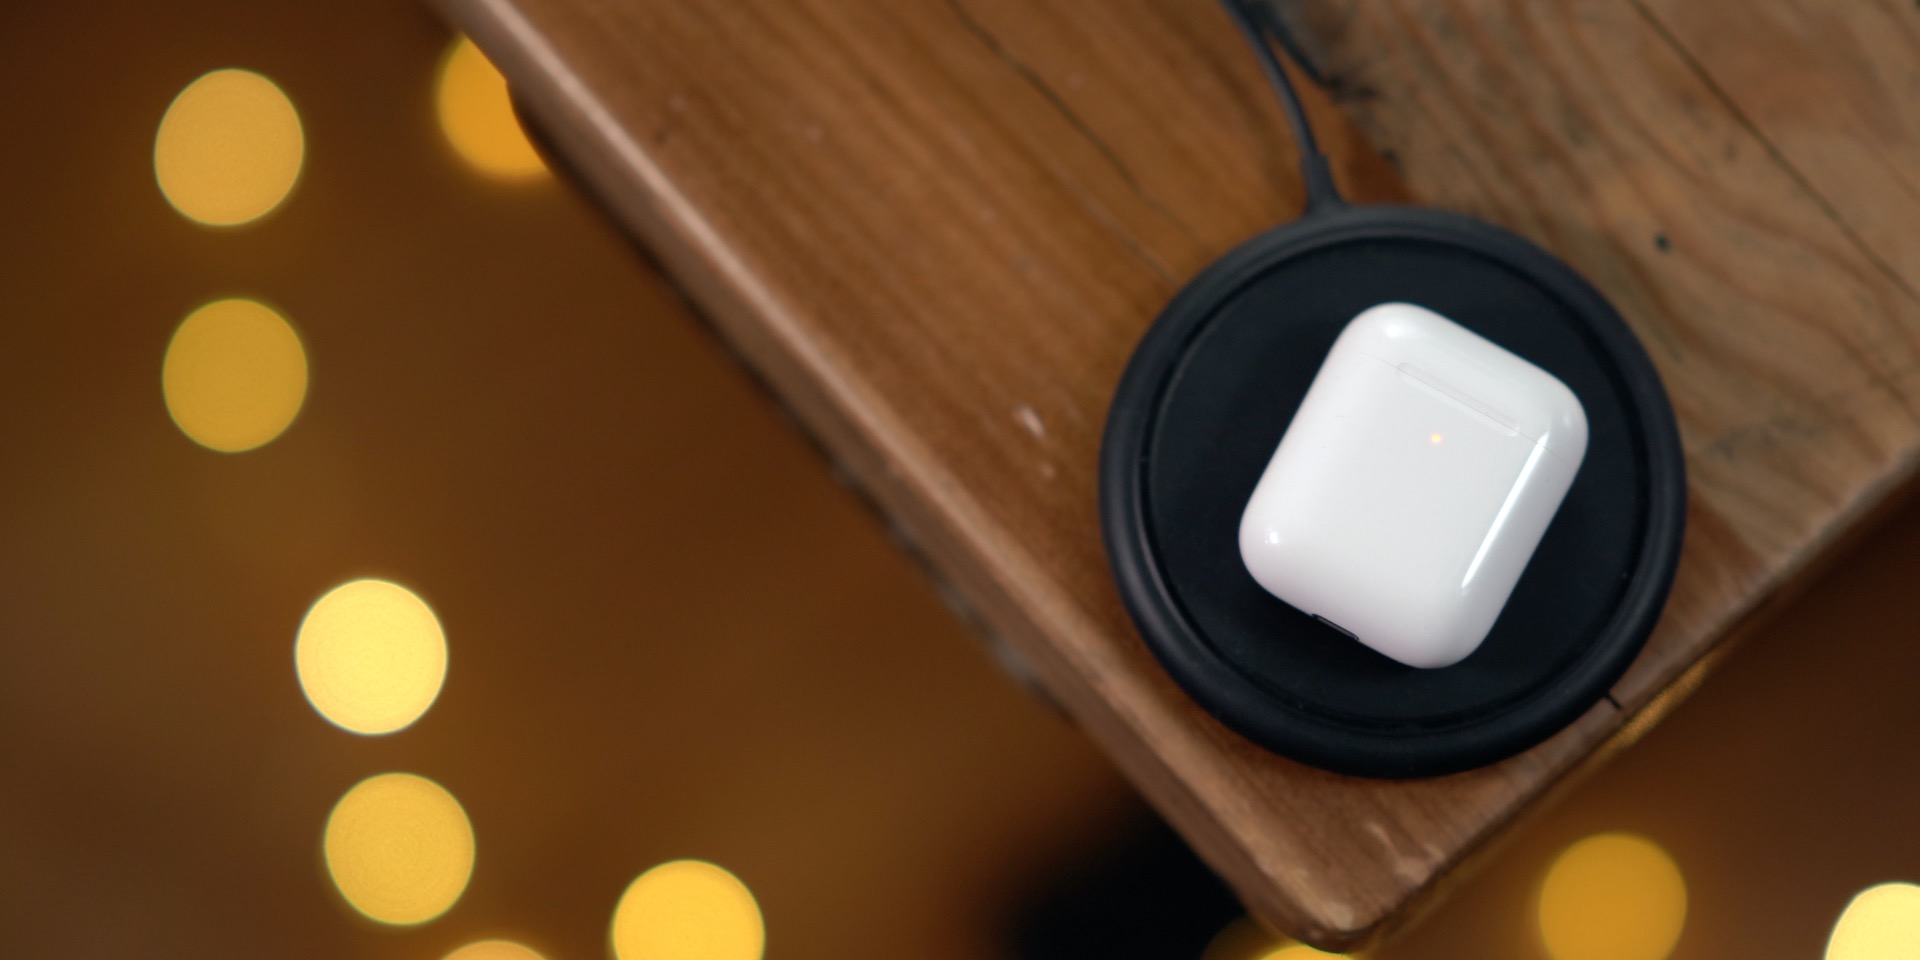 AirPods on Mophie Charger